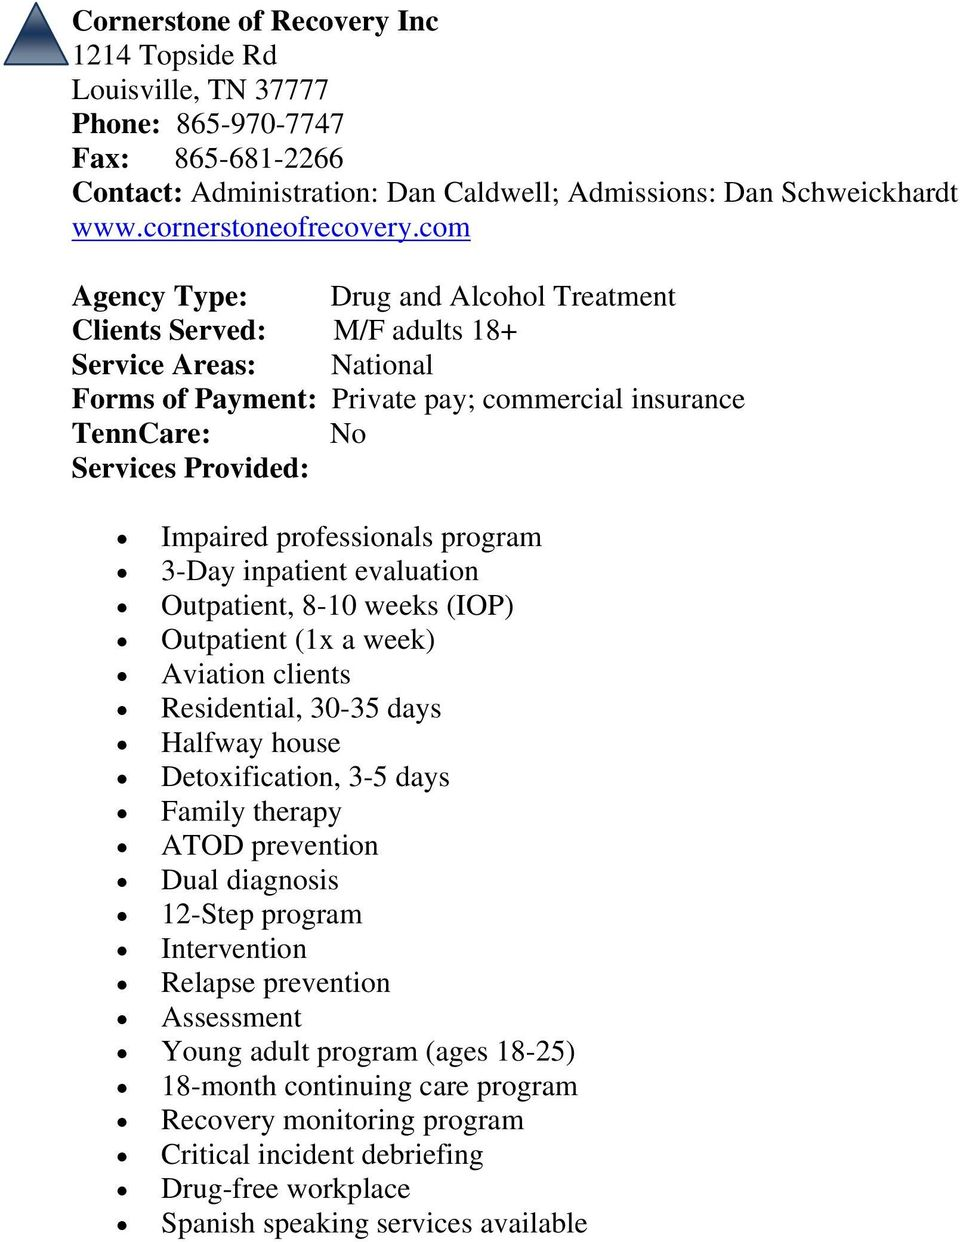 com Drug and Alcohol Treatment M/F adults 18+ Service Areas: National Forms of Payment: Private pay; commercial insurance TennCare: No Impaired professionals program 3-Day inpatient evaluation